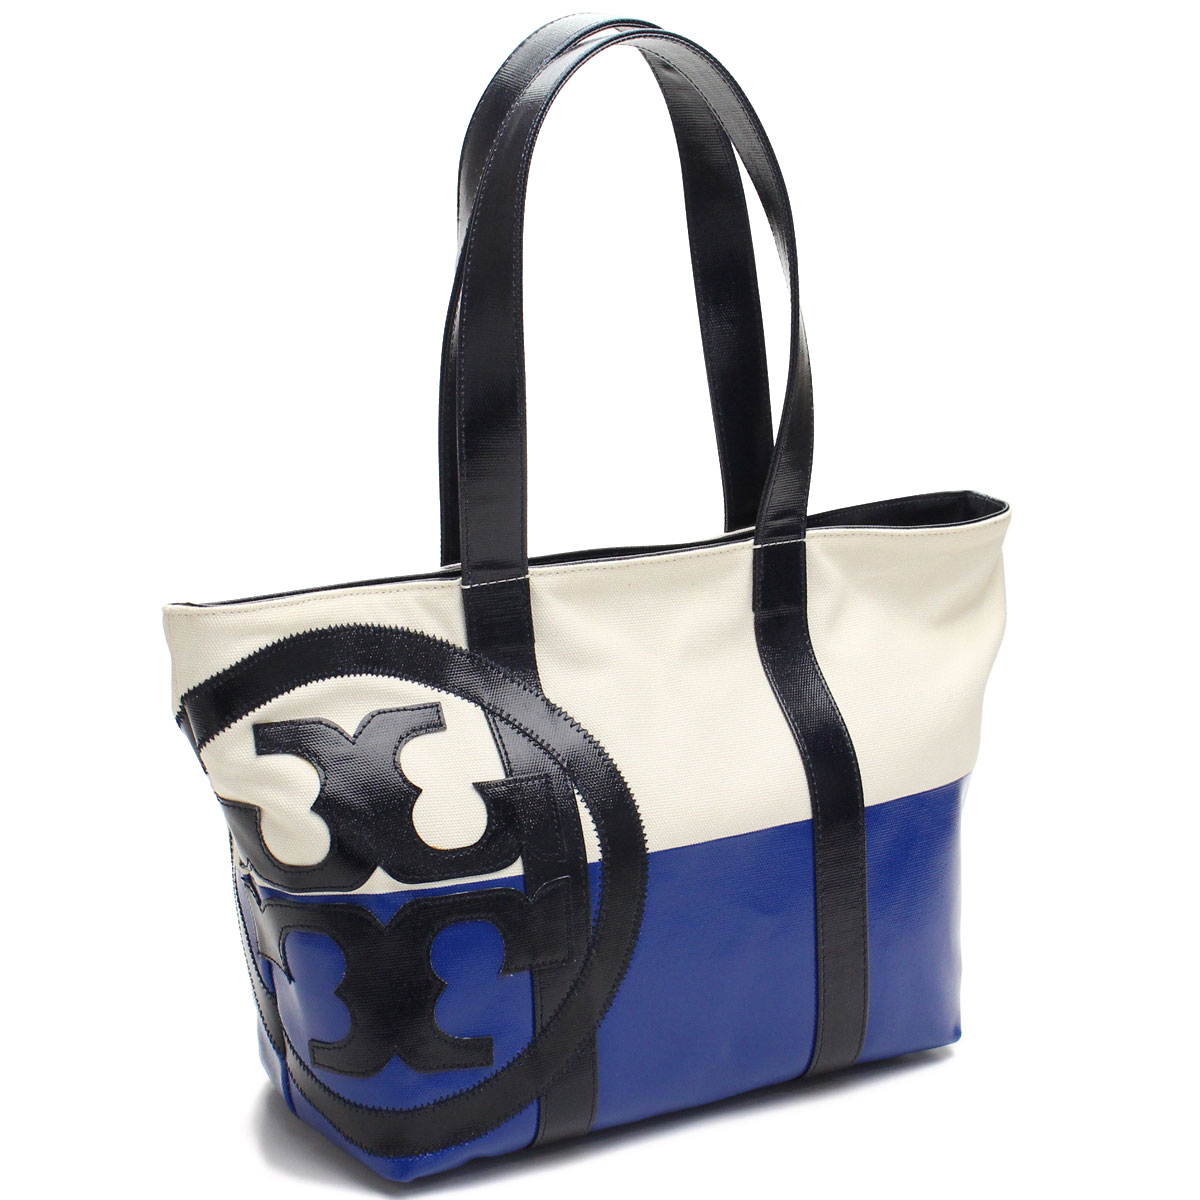 43dd8d3df Bighit The total brand wholesale: Tory Burch (TORY BURCH) tote bag 21159620  291 NATURAL/TELLY BLUE/T blue series white( taxfree/send by EMS/authentic/A  ...